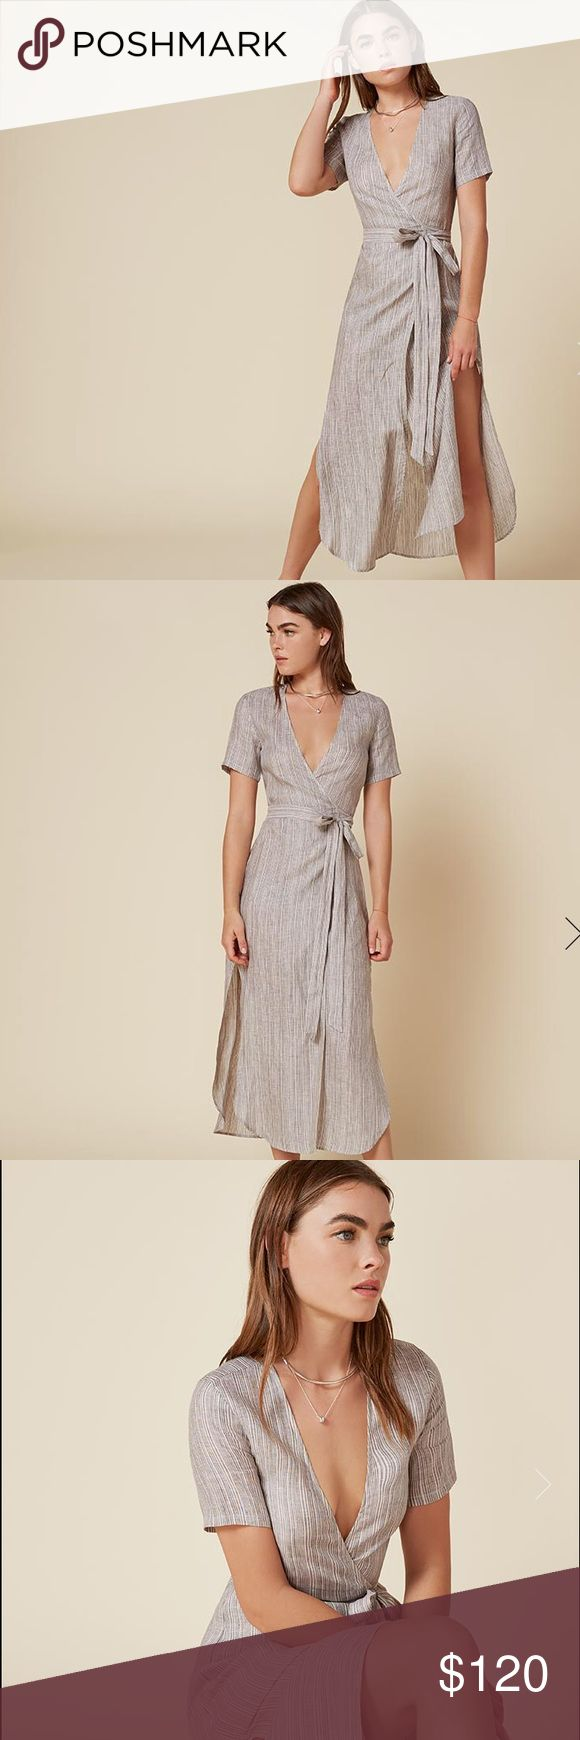 Reformation linen wrap dress Linen adjustable wrap dress size XS/S lightweight material Reformation Dresses Maxi